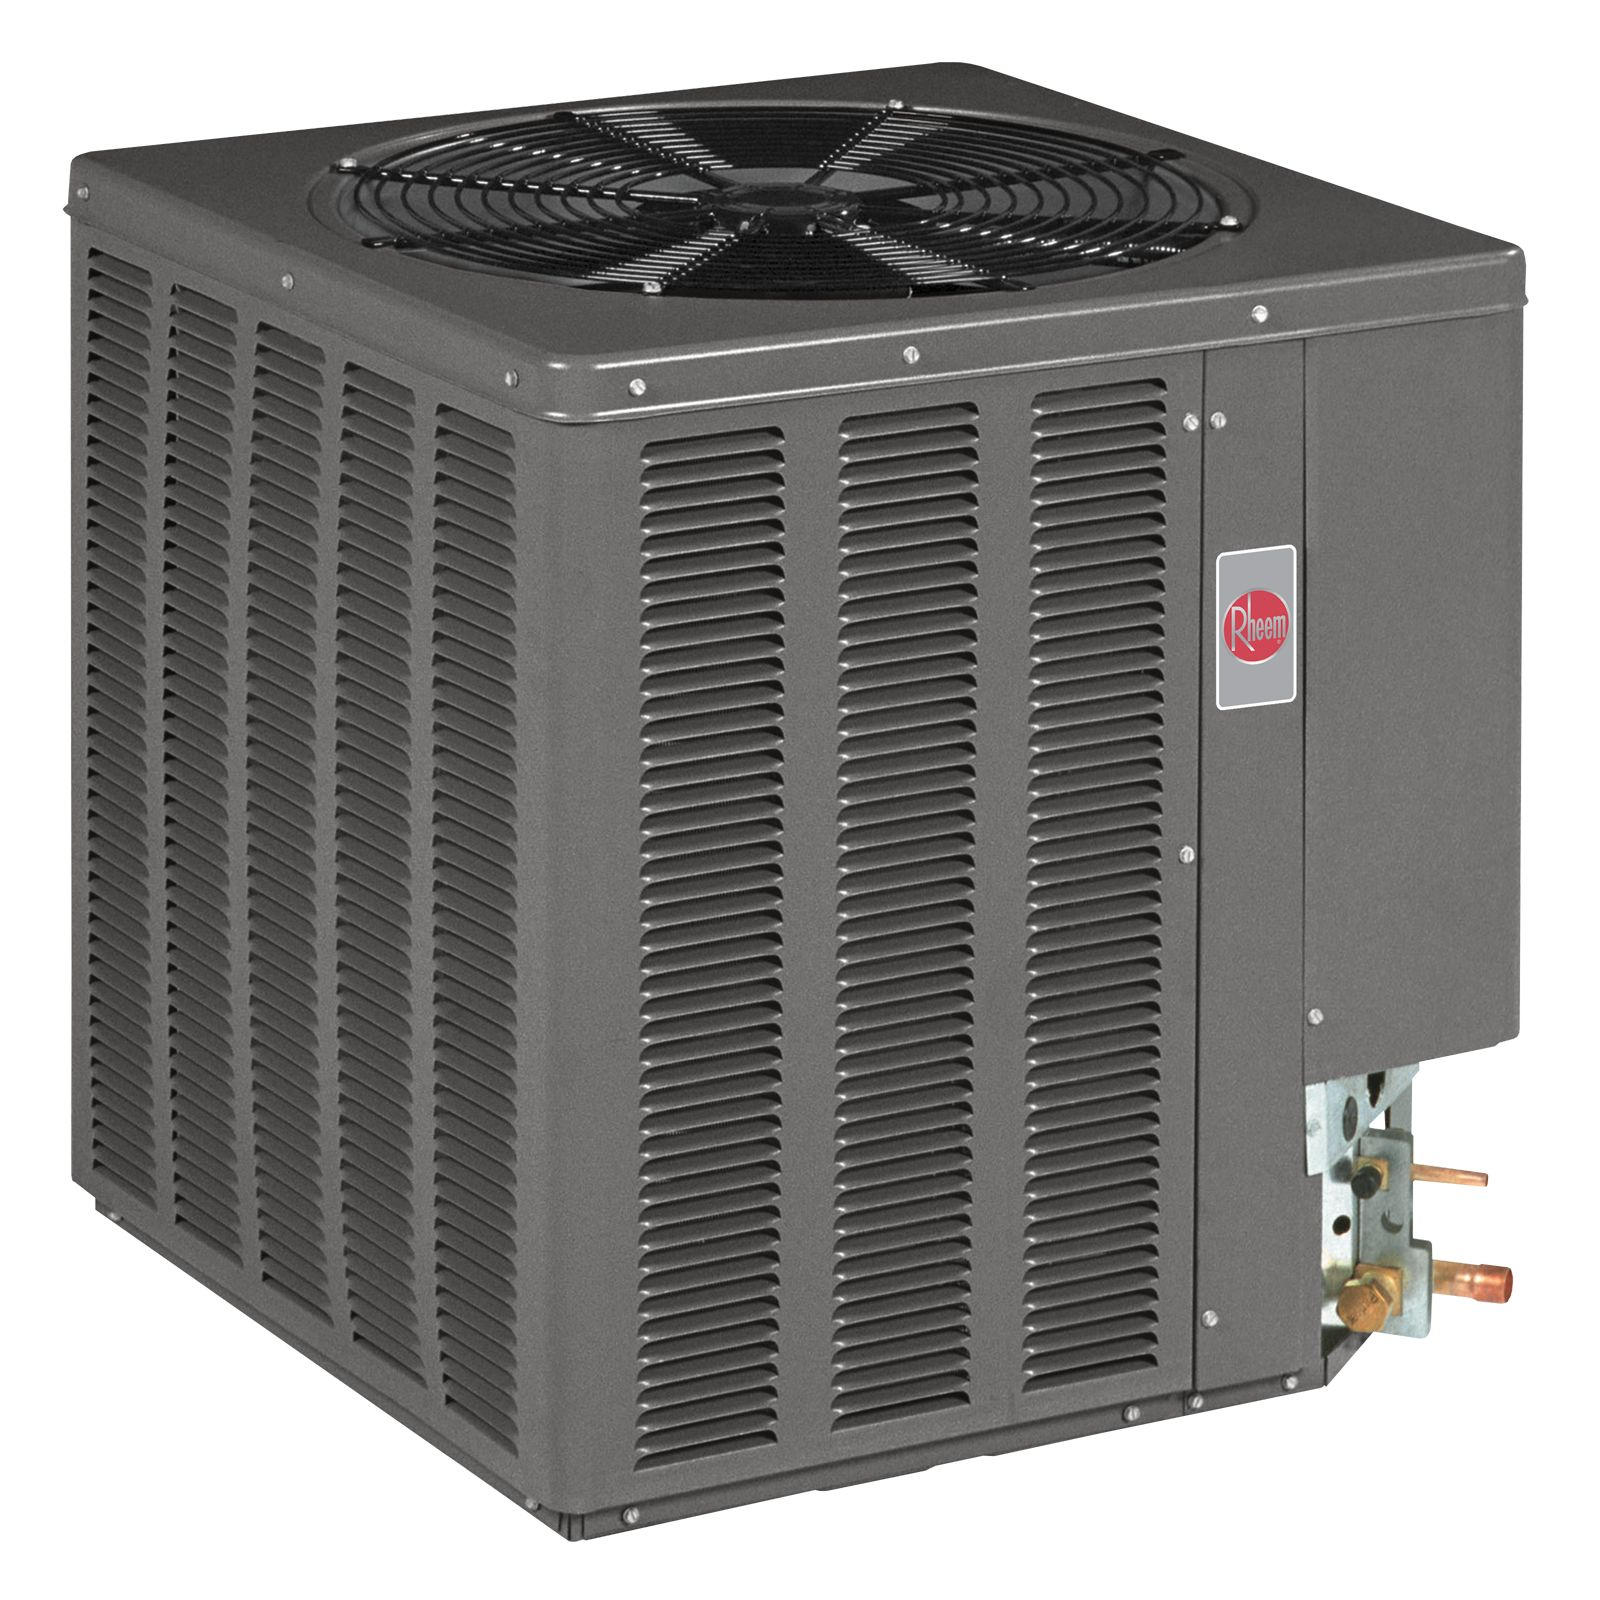 Rheem 16AJL36A01 - Value Series 3 Ton, 16 SEER, R410A Two-Stage Air Conditioner Condenser